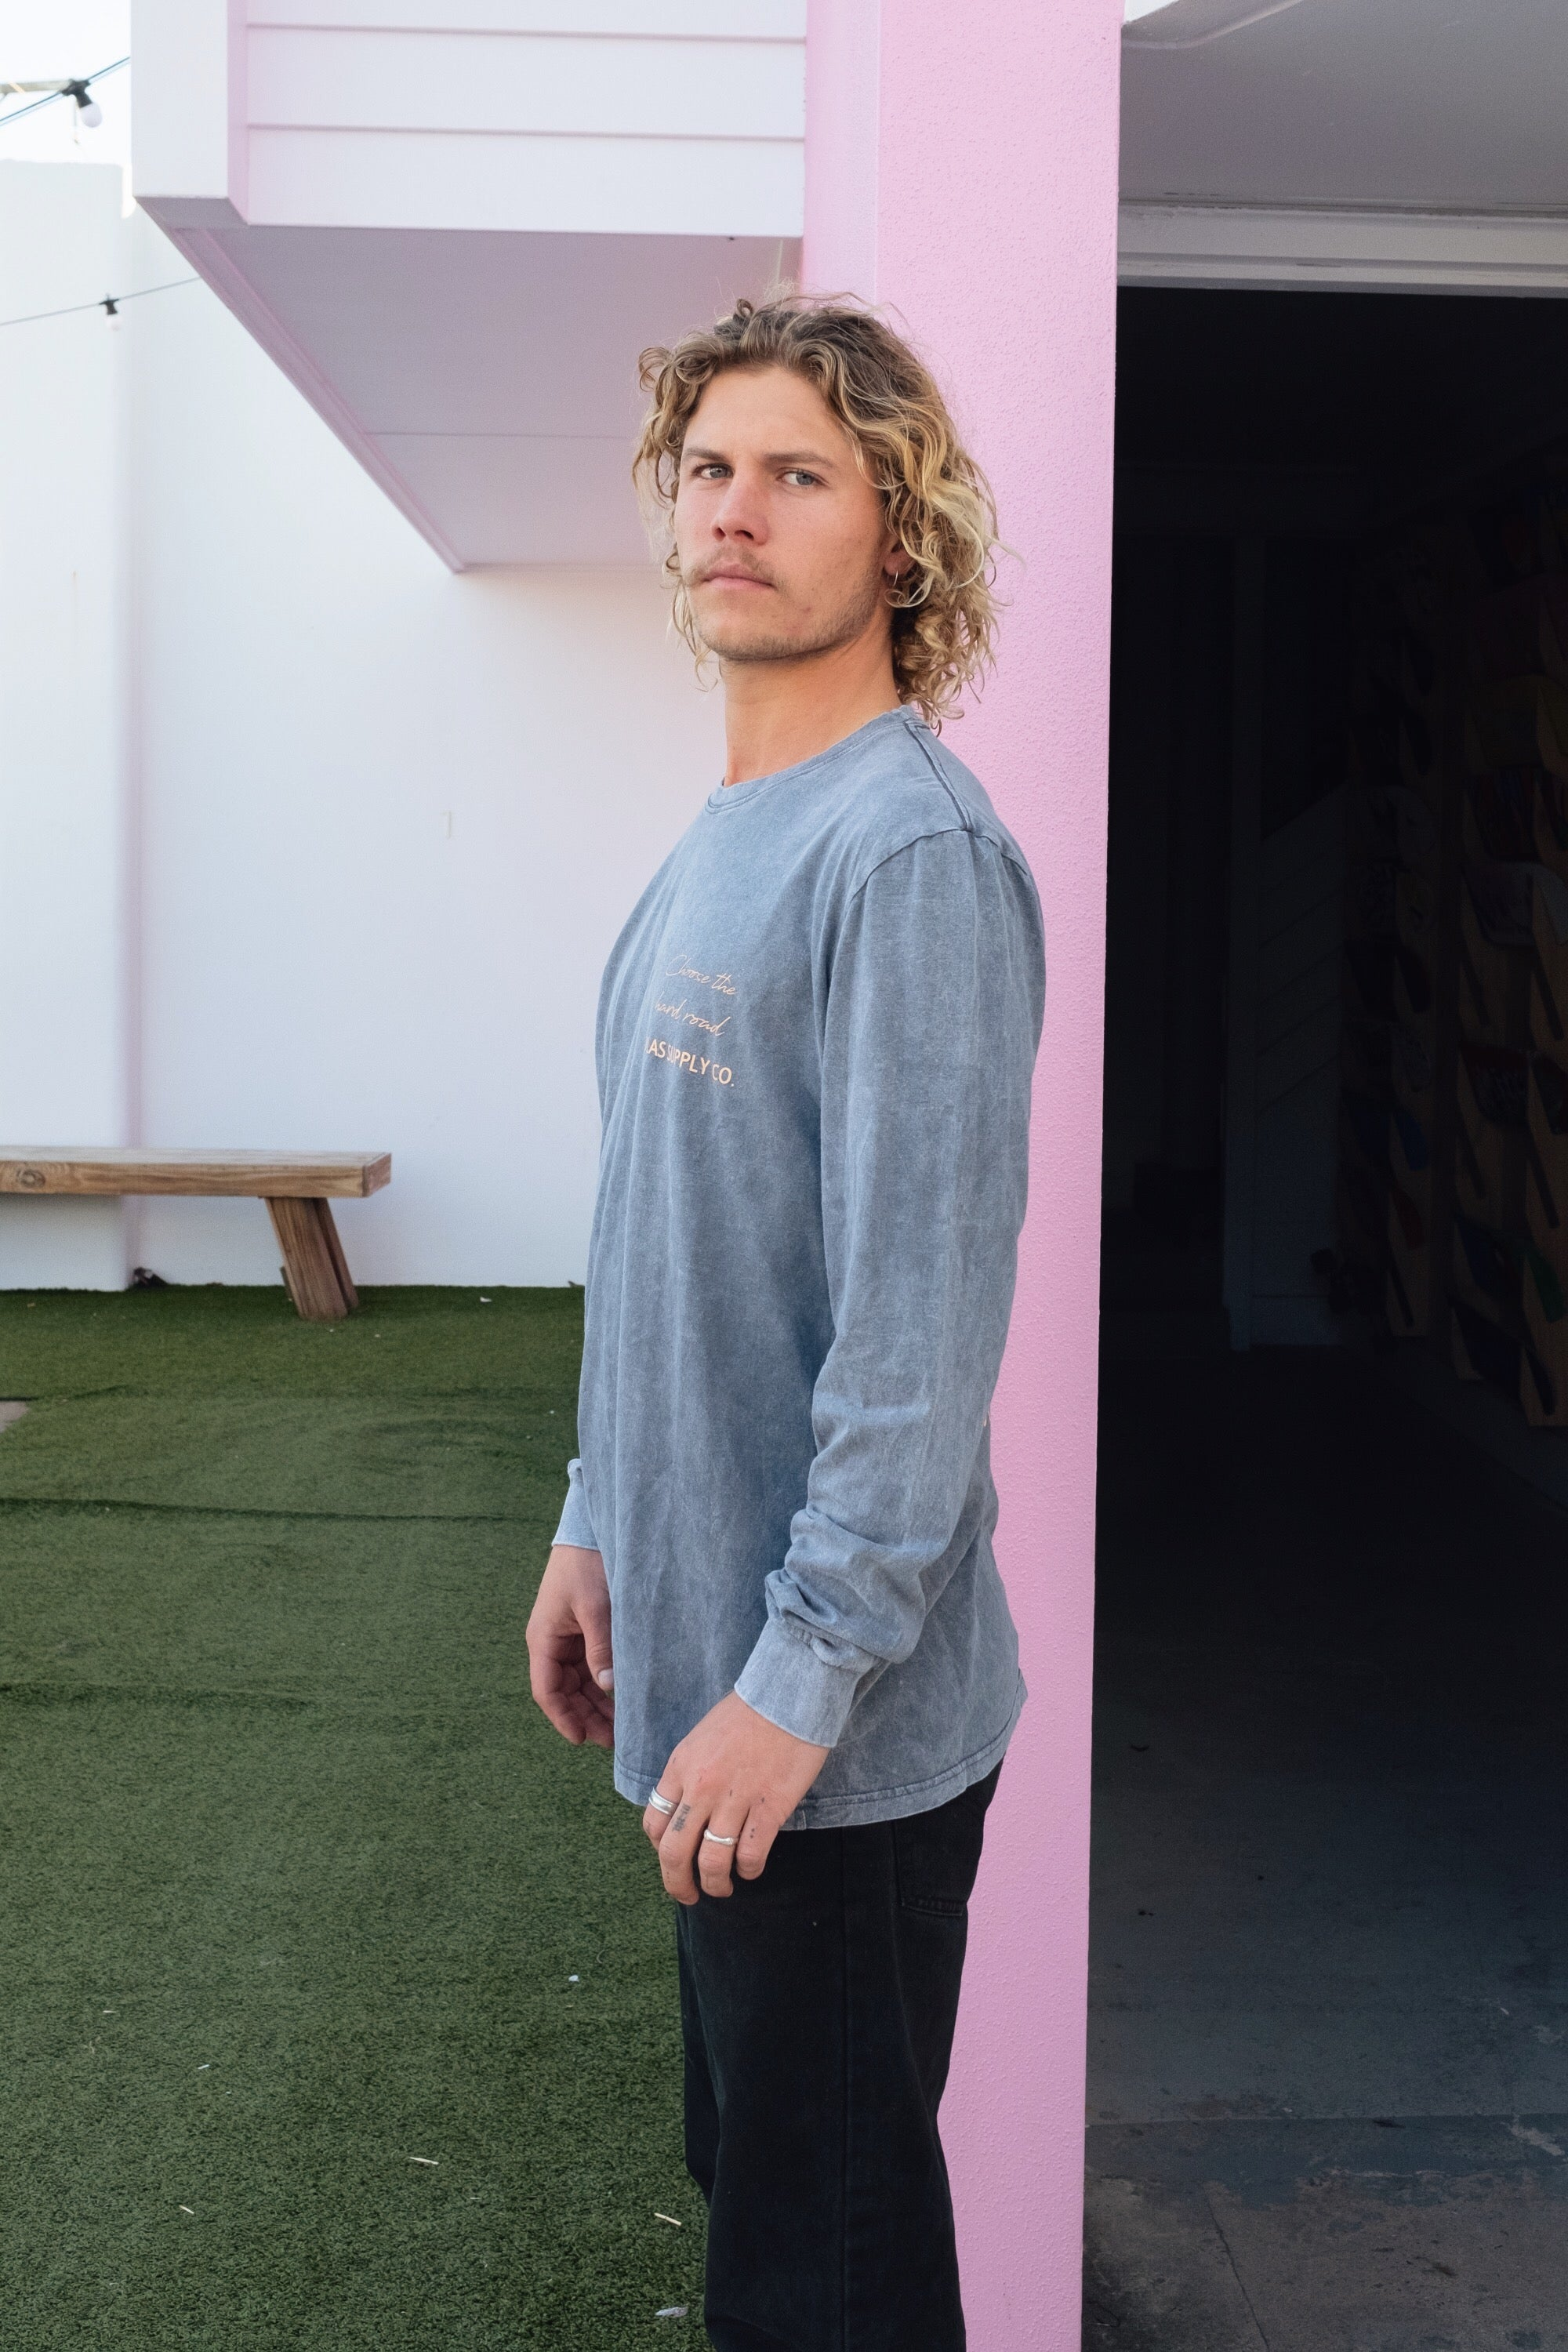 CANGGU LONG SLEEVE TEE CHARCOAL - OLAS SUPPLY CO.